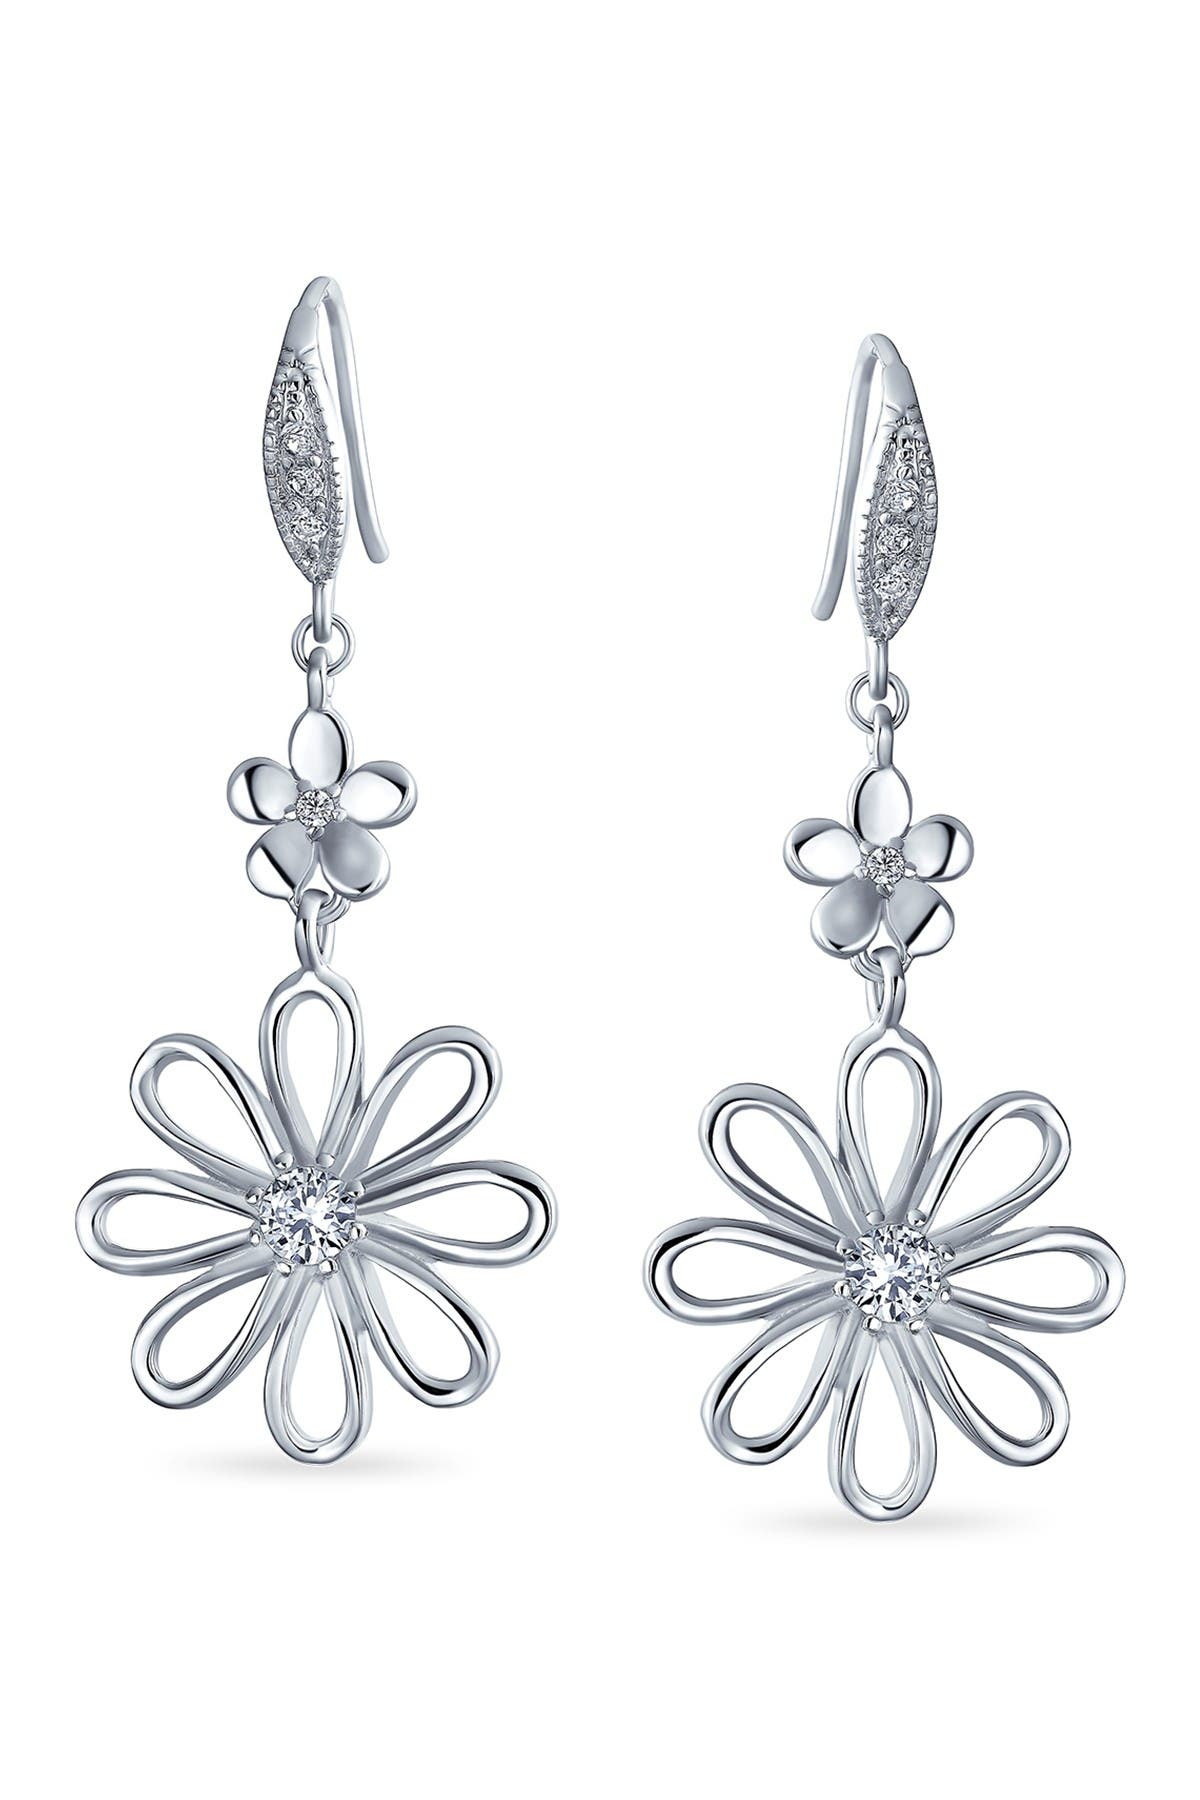 Image of Bling Jewelry Bridal Daisy CZ Dangle Earrings